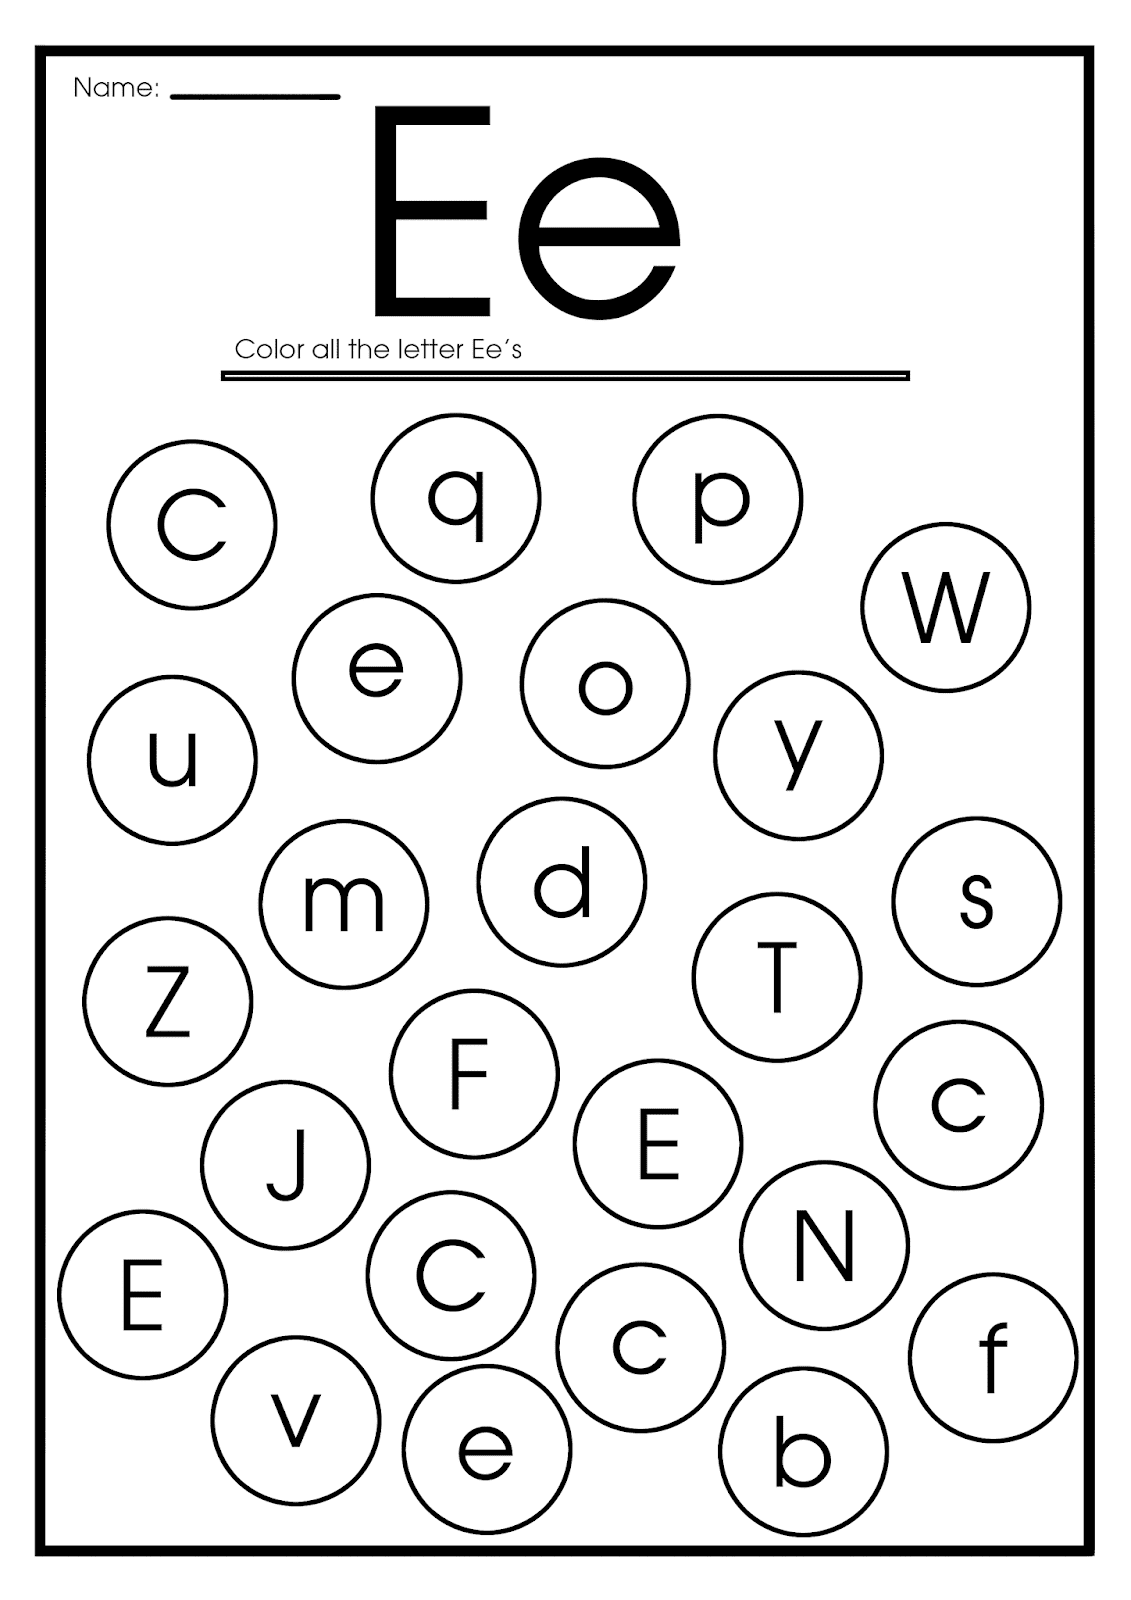 English For Kids Step By Step Letter E Worksheets Flash